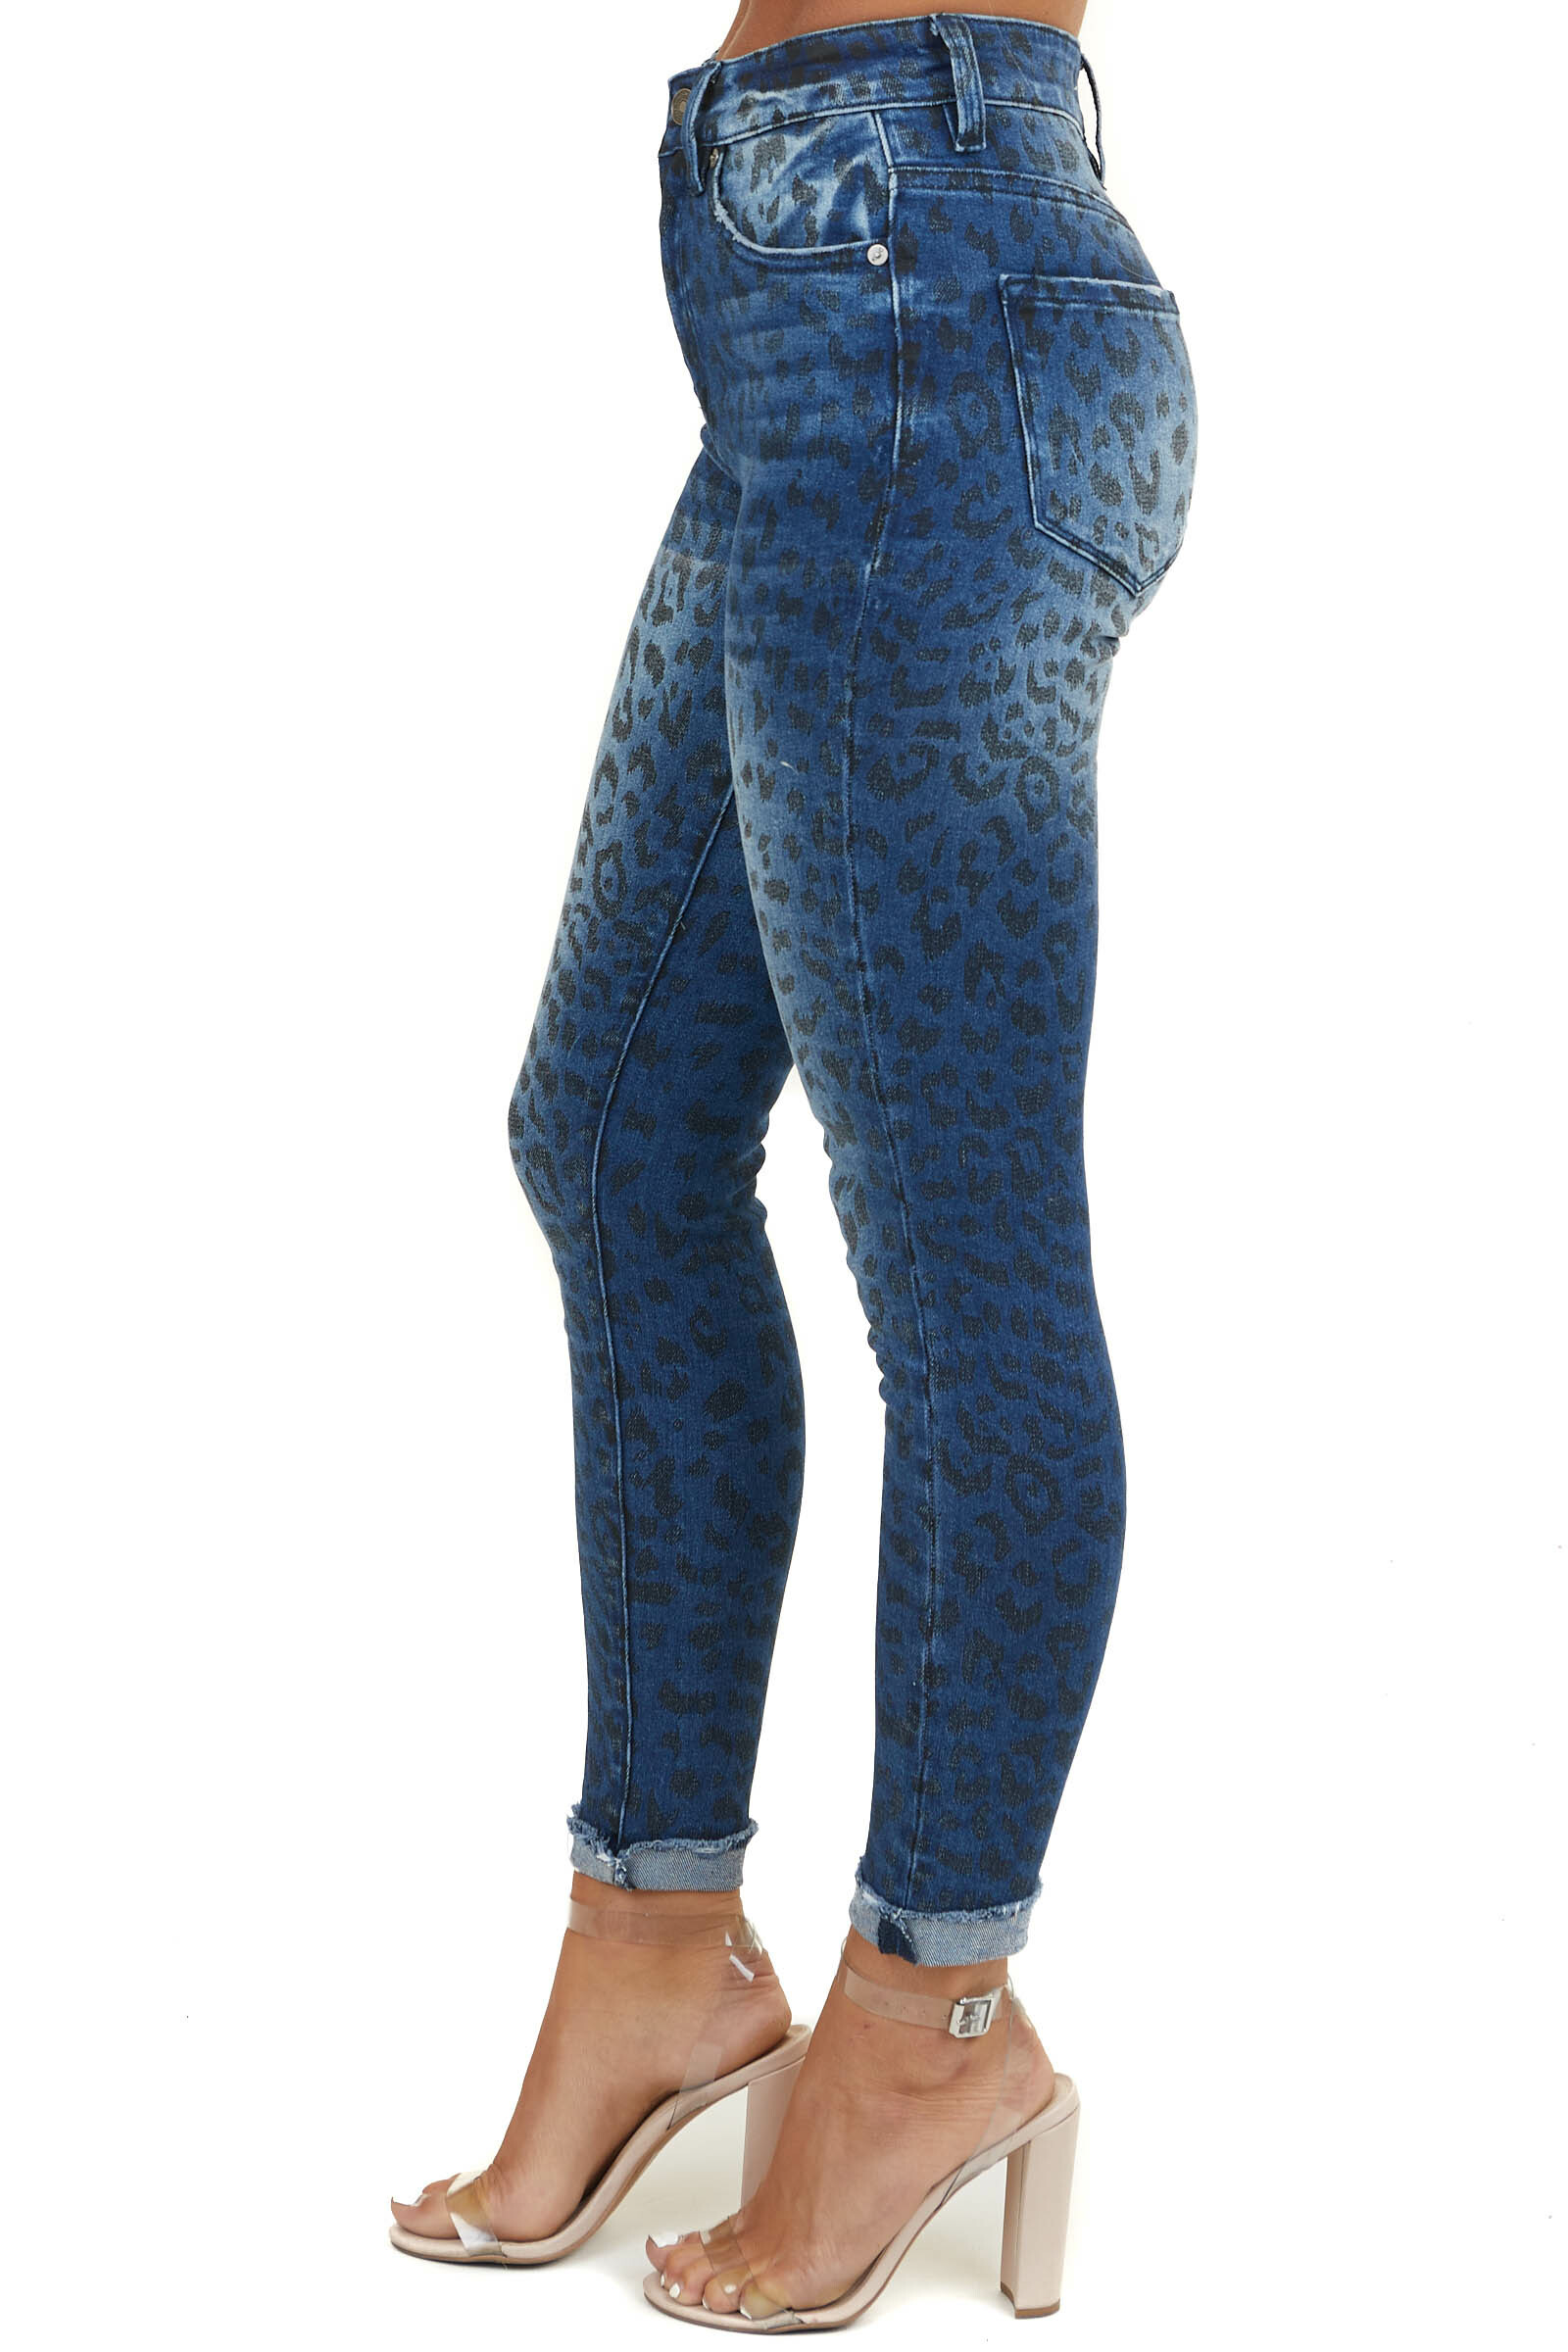 Dark Wash Denim Blue High Rise Jeans with Leopard Print